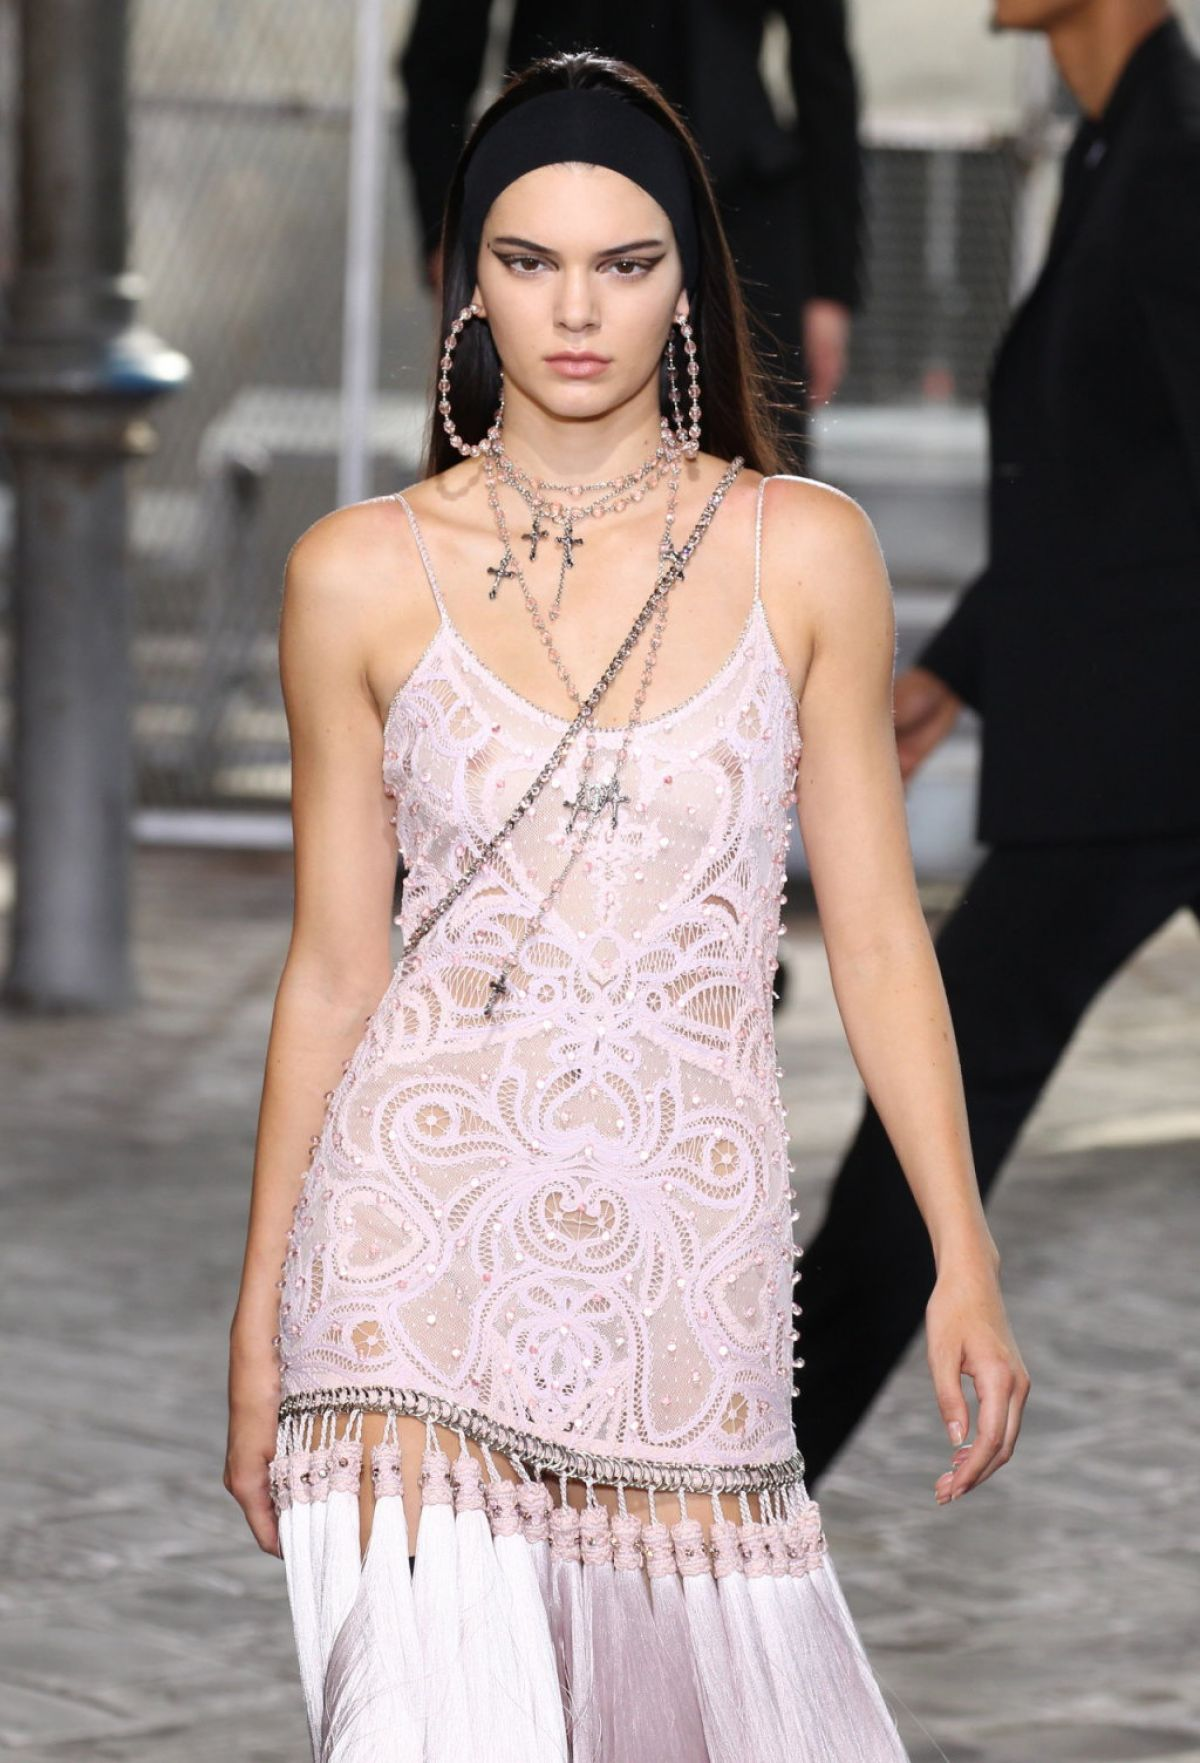 Fashion Through The Decades: KENDALL JENNER On The Runway Of Givenchy Fashion Show In